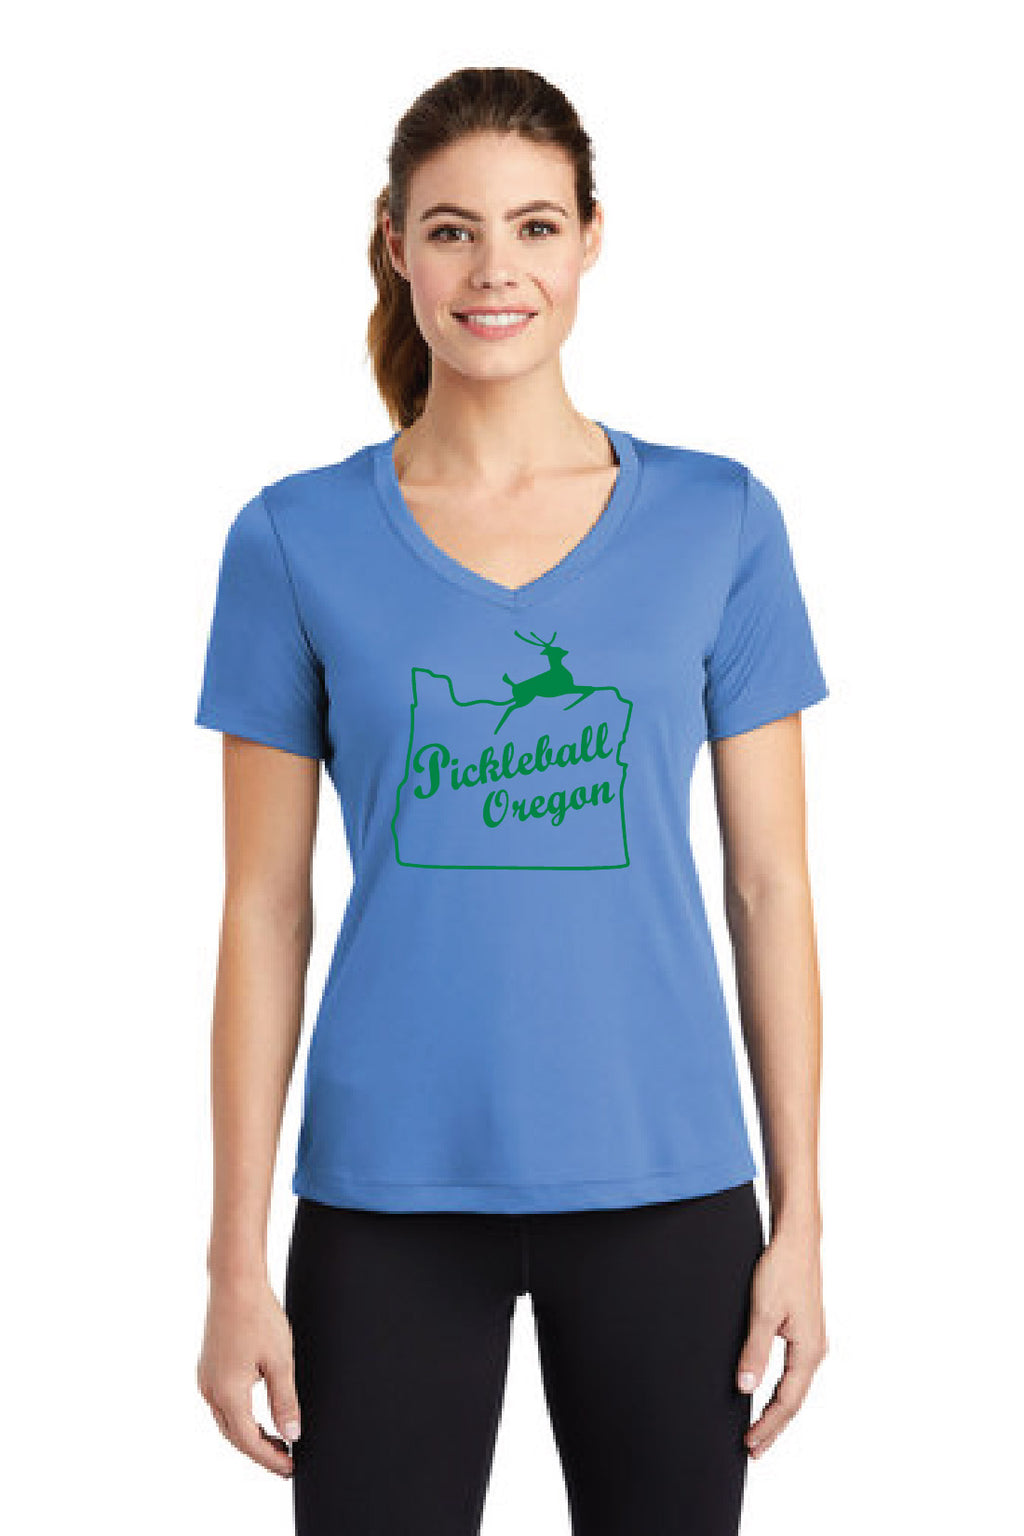 Ladies Short Sleeve Performance V-Neck Tee 'Pickleball Oregon'